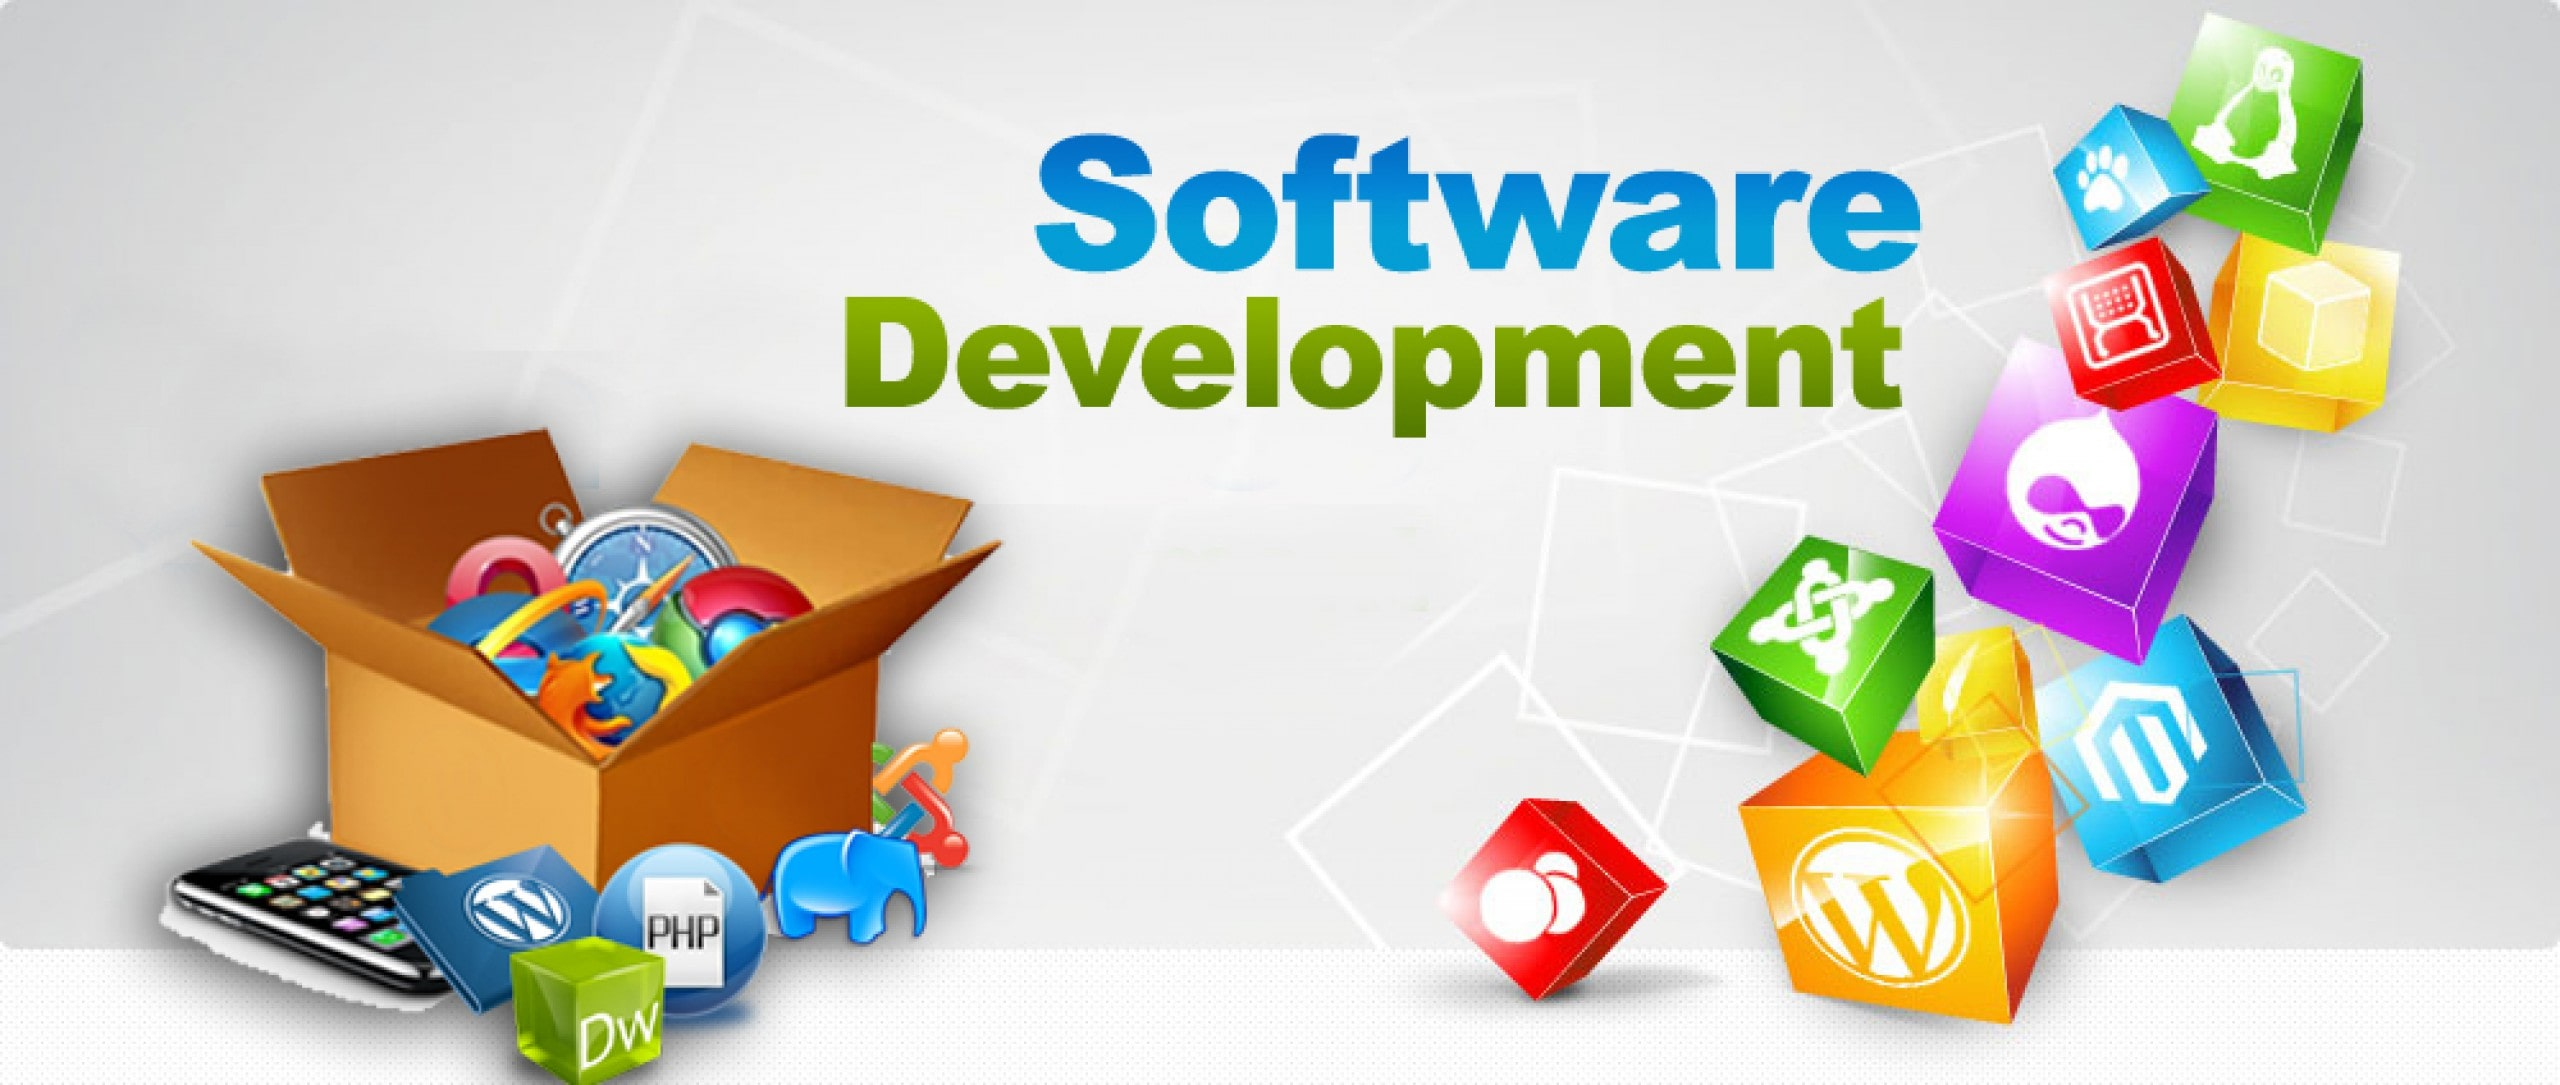 Software company aurangabad